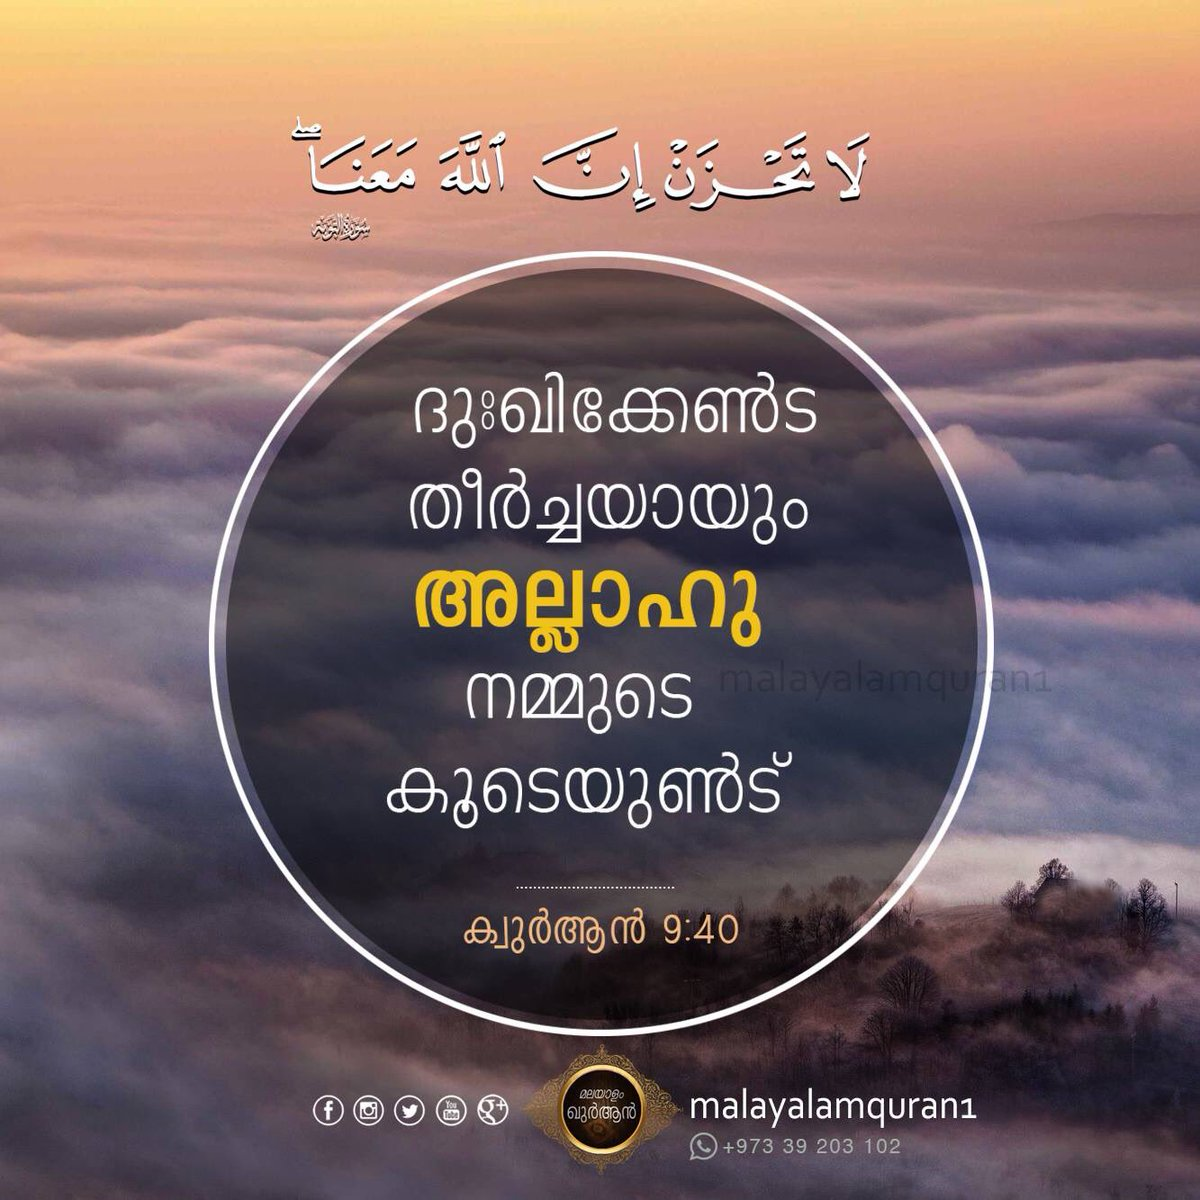 Malayalam Quran On Twitter Quran Quote Quoteoftheday Malayalam Islam Learn